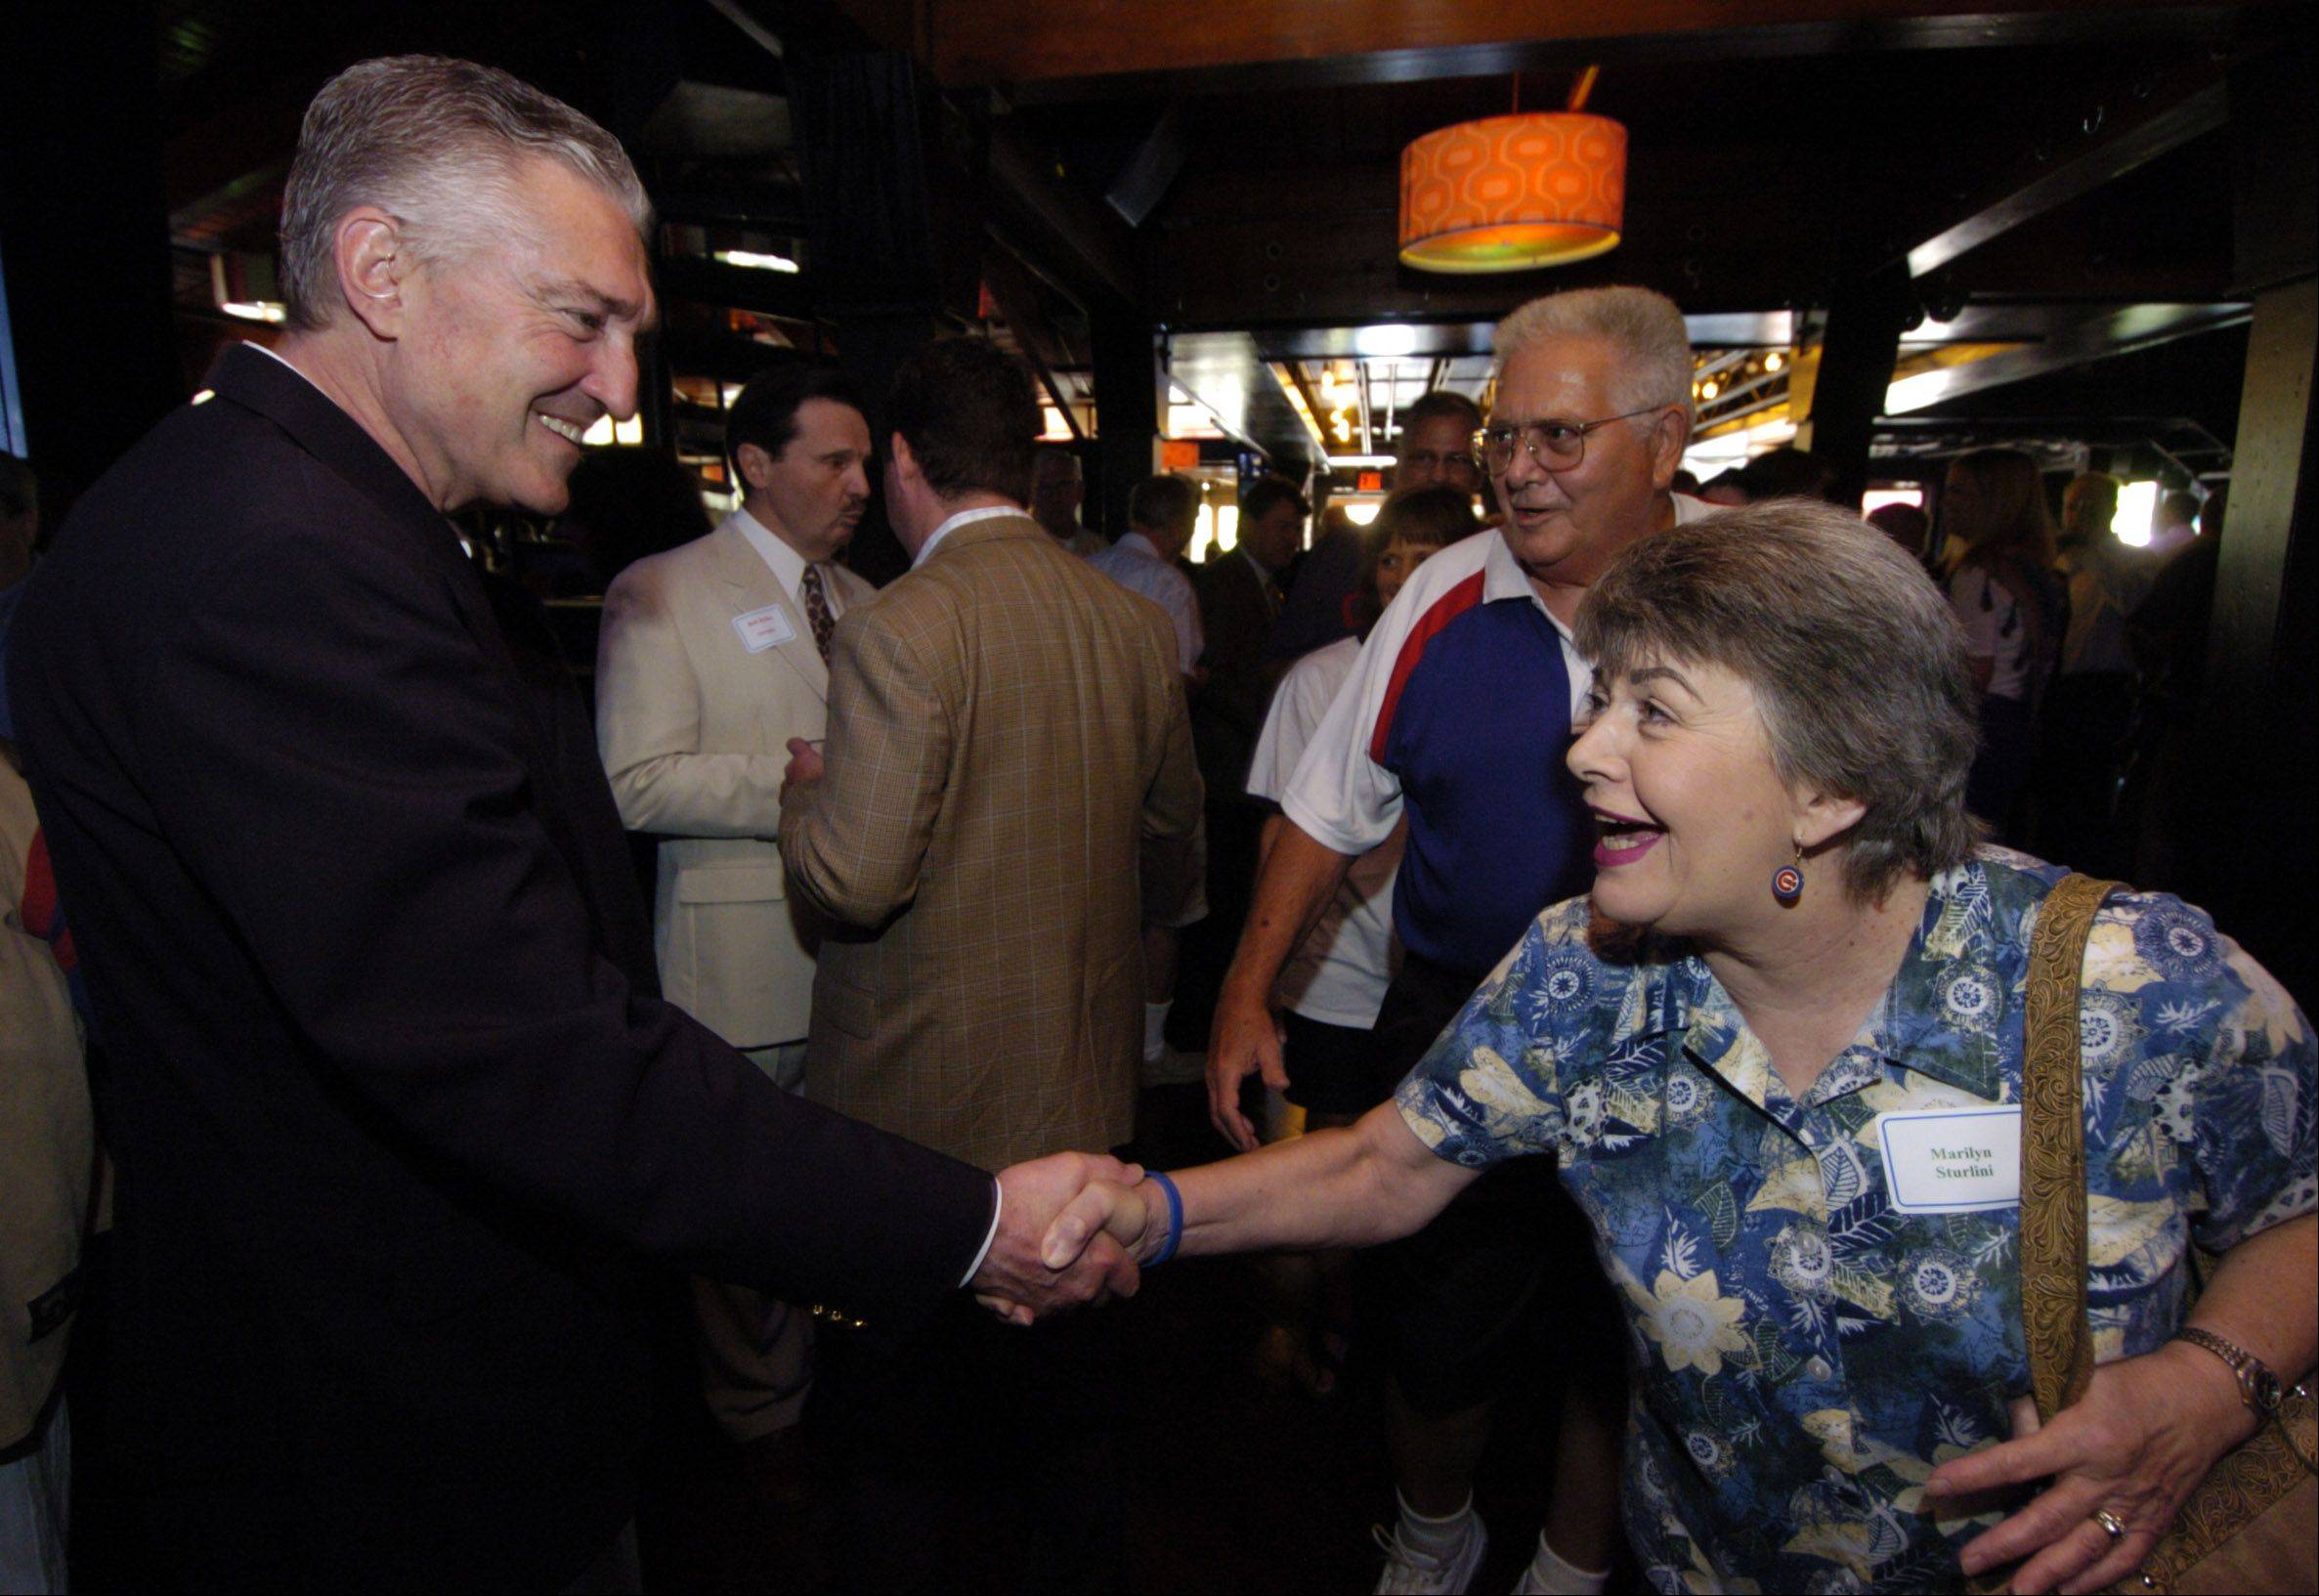 Marilyn Sturlini of Rolling Meadows greets Cubs radio broadcaster Pat Hughes during a Subscriber Total Access event celebrating the life of Ron Santo, at Drink Nightclub in Schaumburg Thursday.